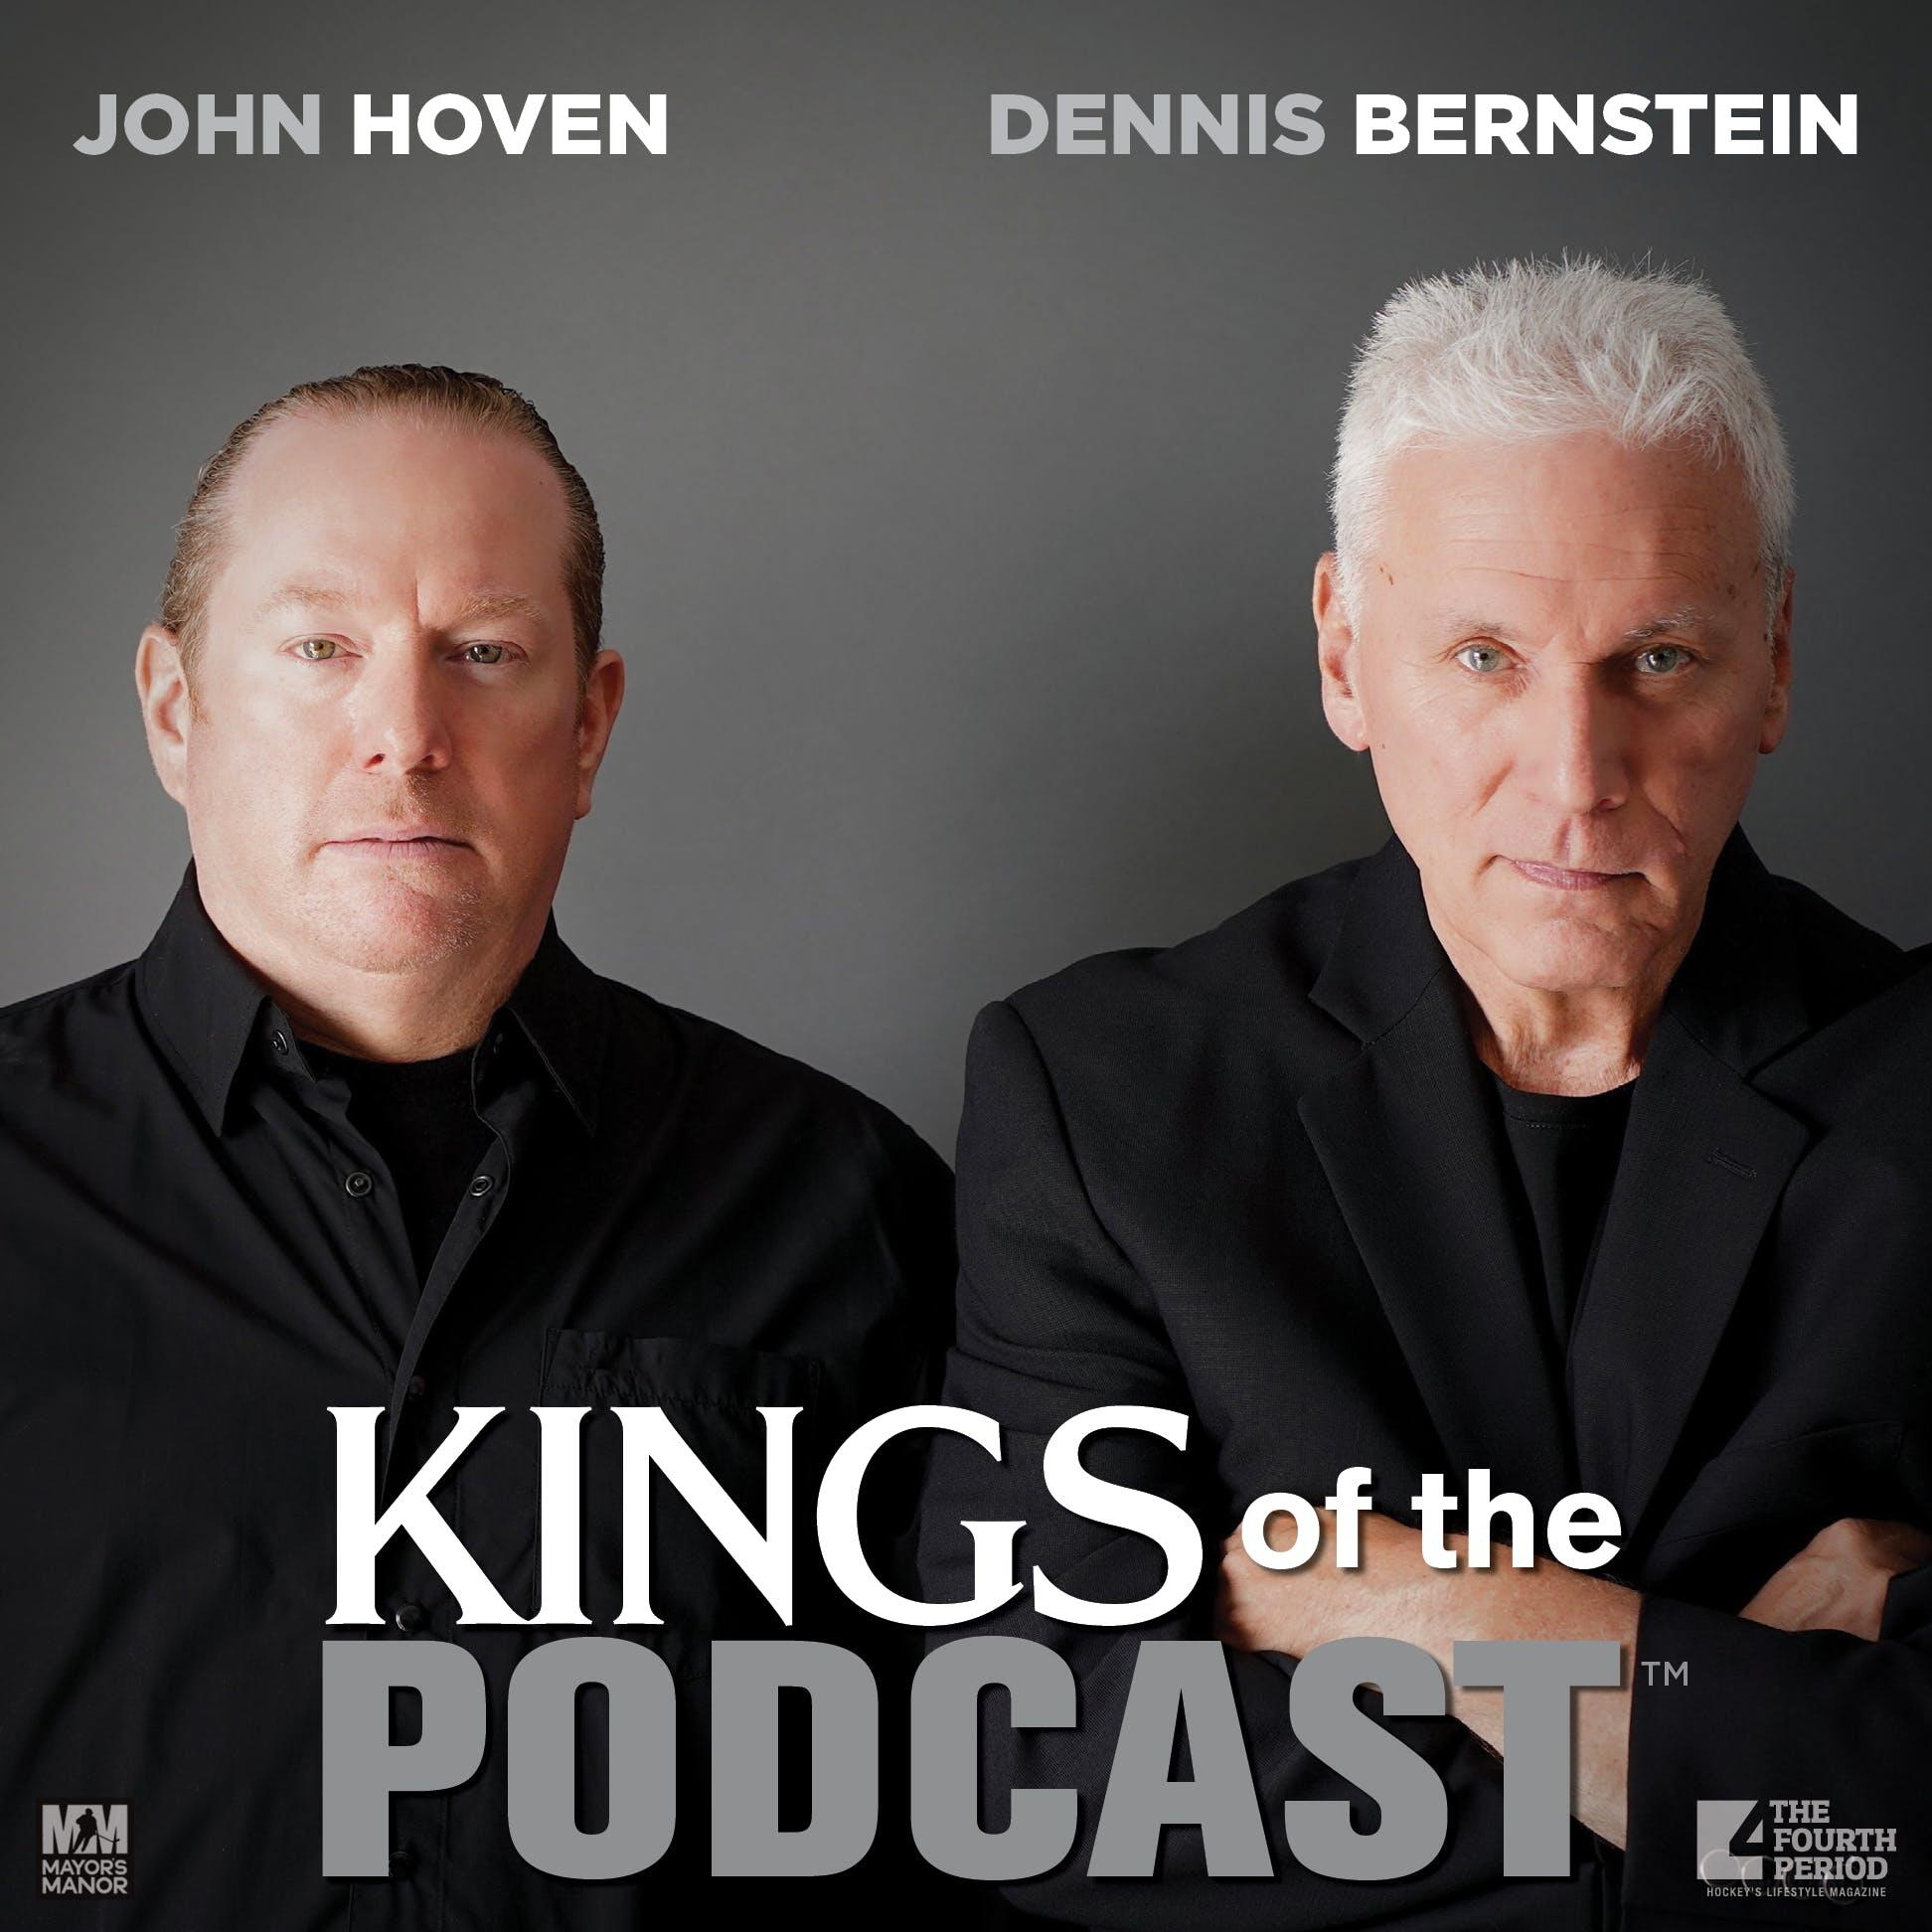 Listen to the KINGS OF THE PODCAST Episode - 7: Kings Of The Podcast Ep. 7 on iHeartRadio | iHeartRadio